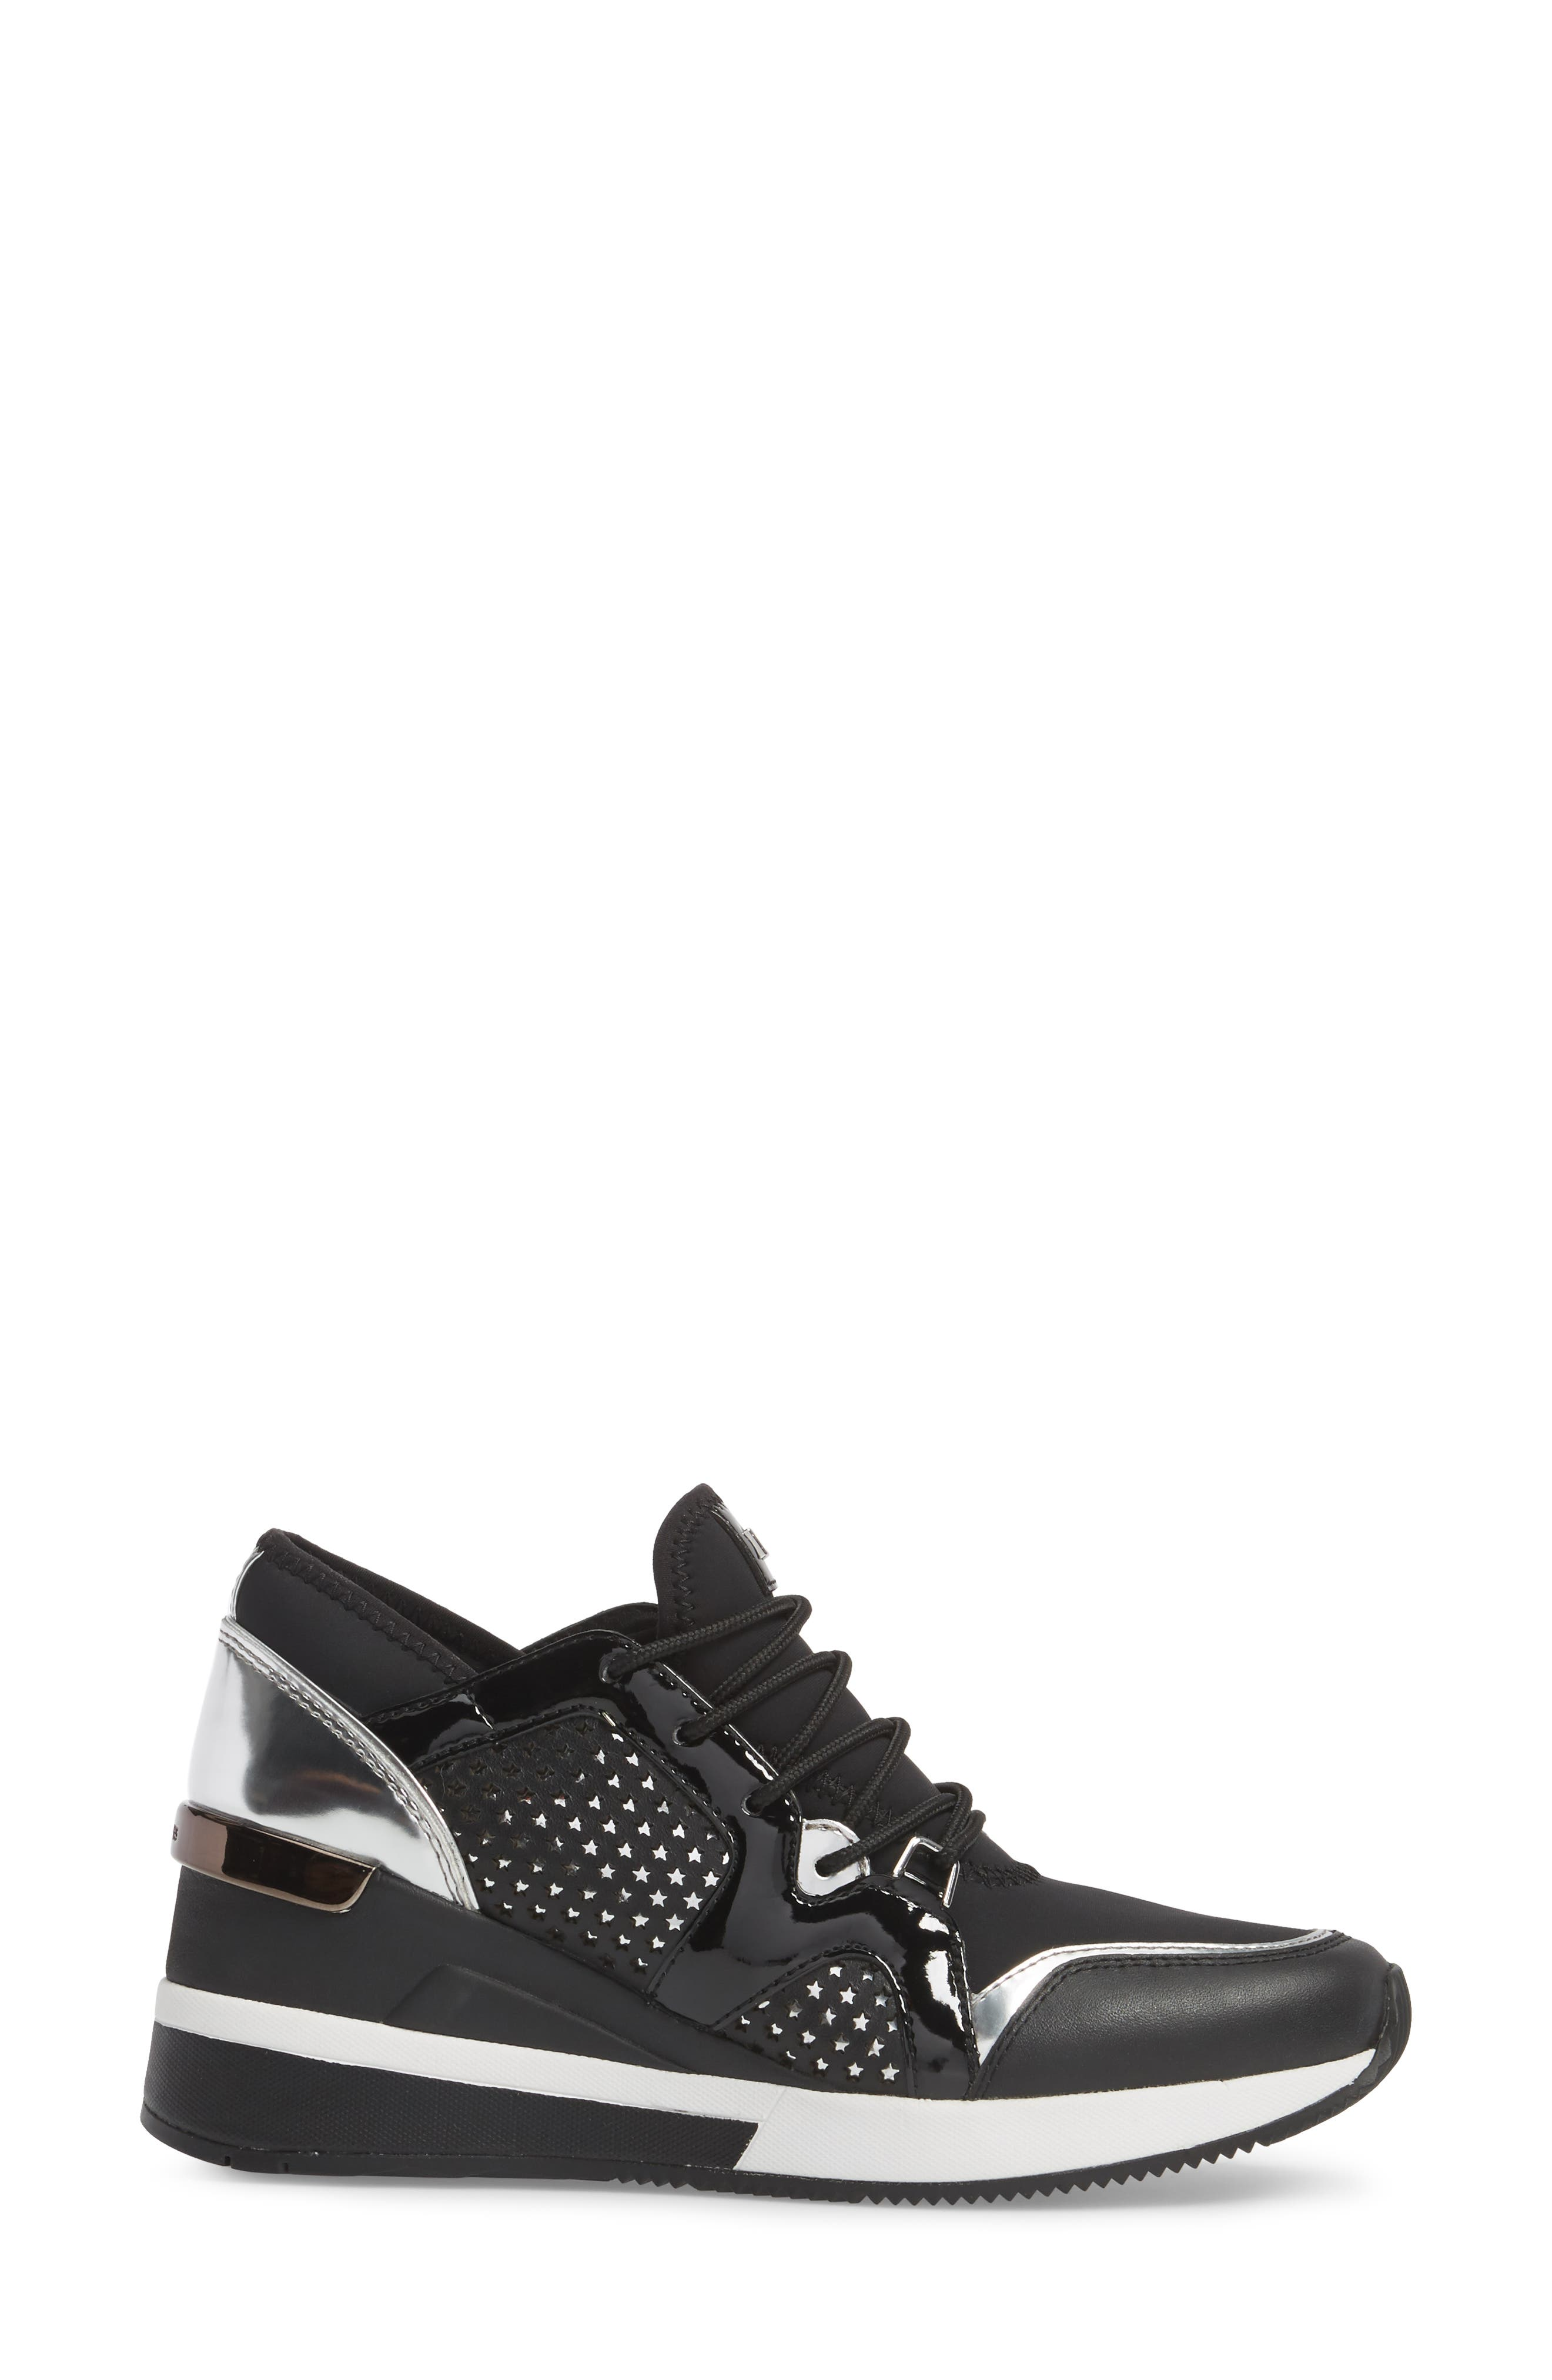 Scout Wedge Sneaker,                             Alternate thumbnail 3, color,